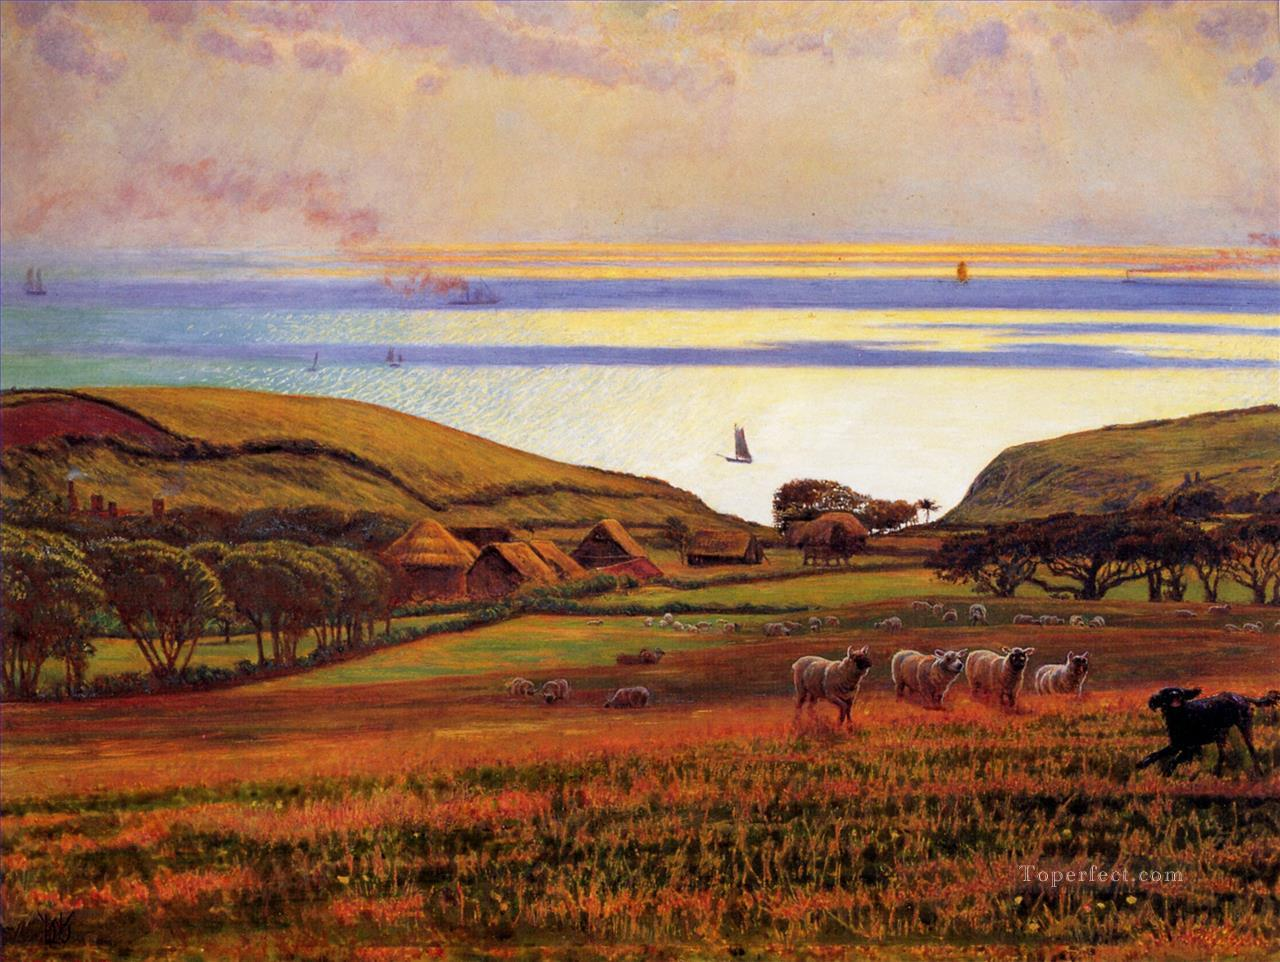 Fairlight Downs Sunlight on the Sea British William Holman Hunt Oil Paintings